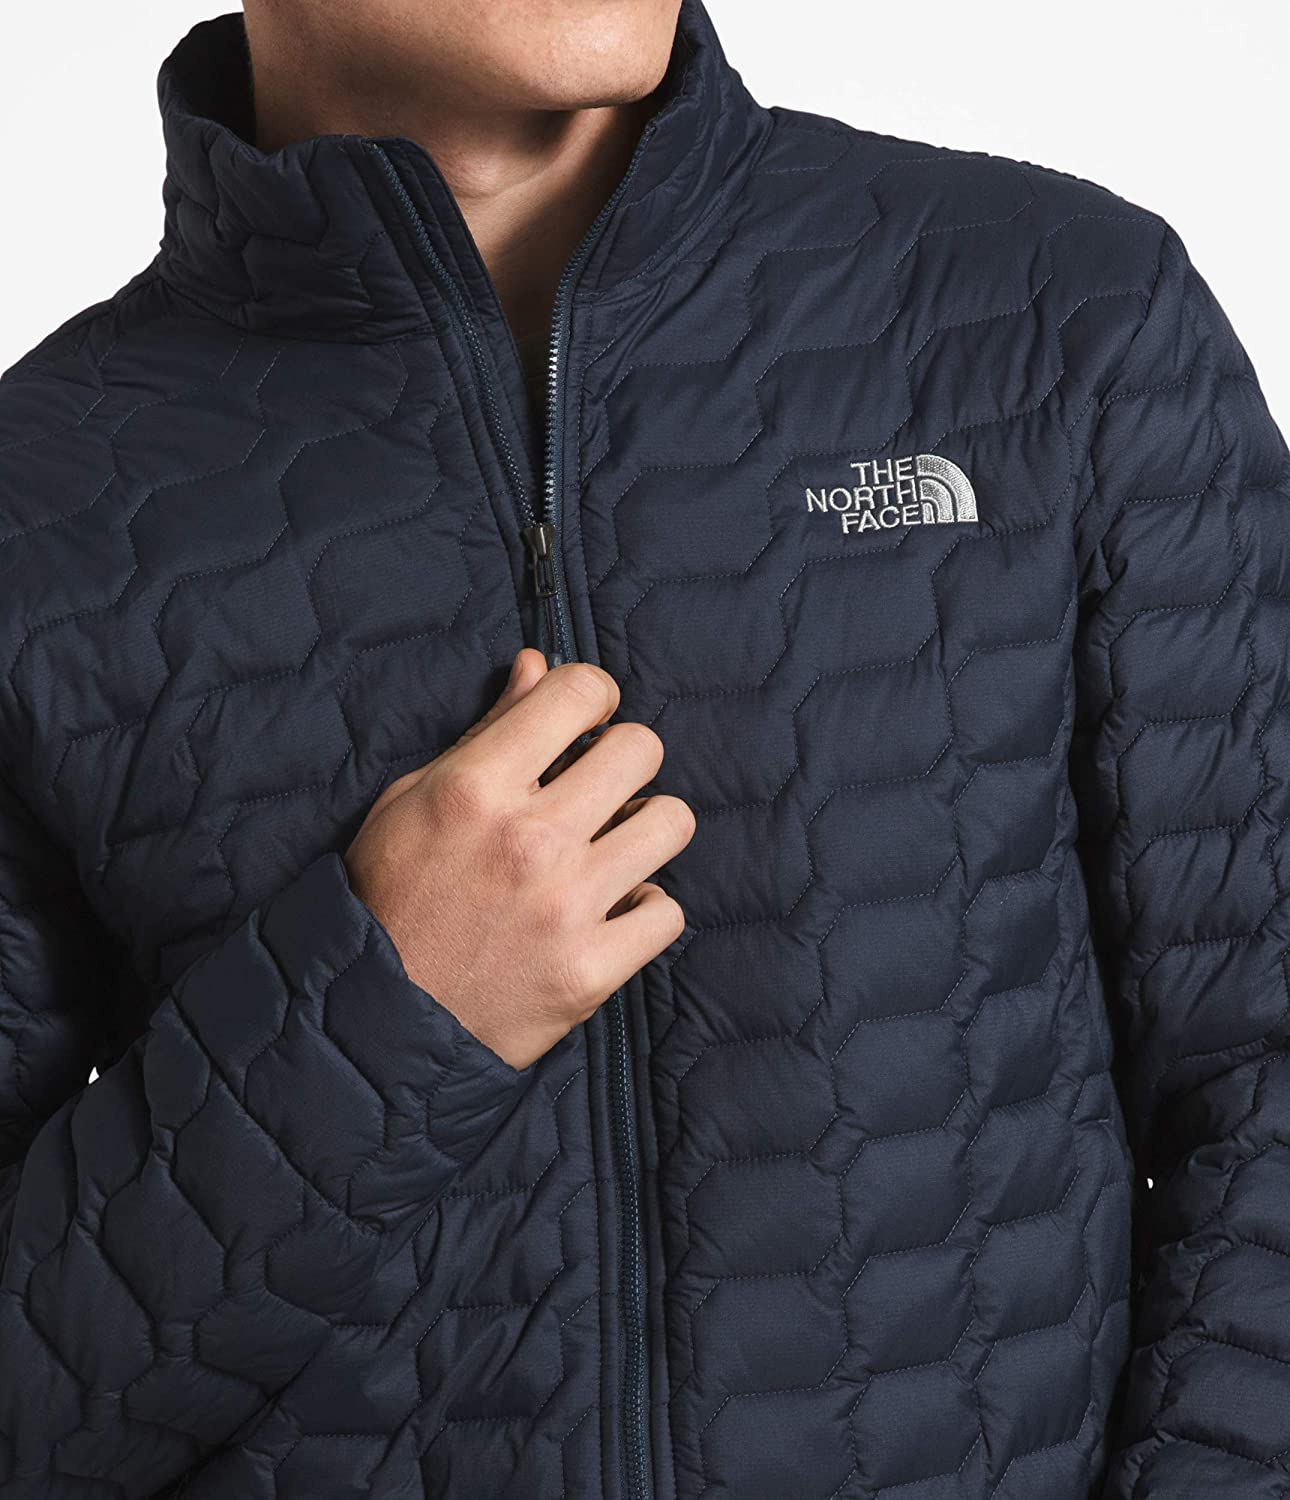 8820b3da4f Amazon.com  The North Face Men s Thermoball Full Zip Jacket  Clothing